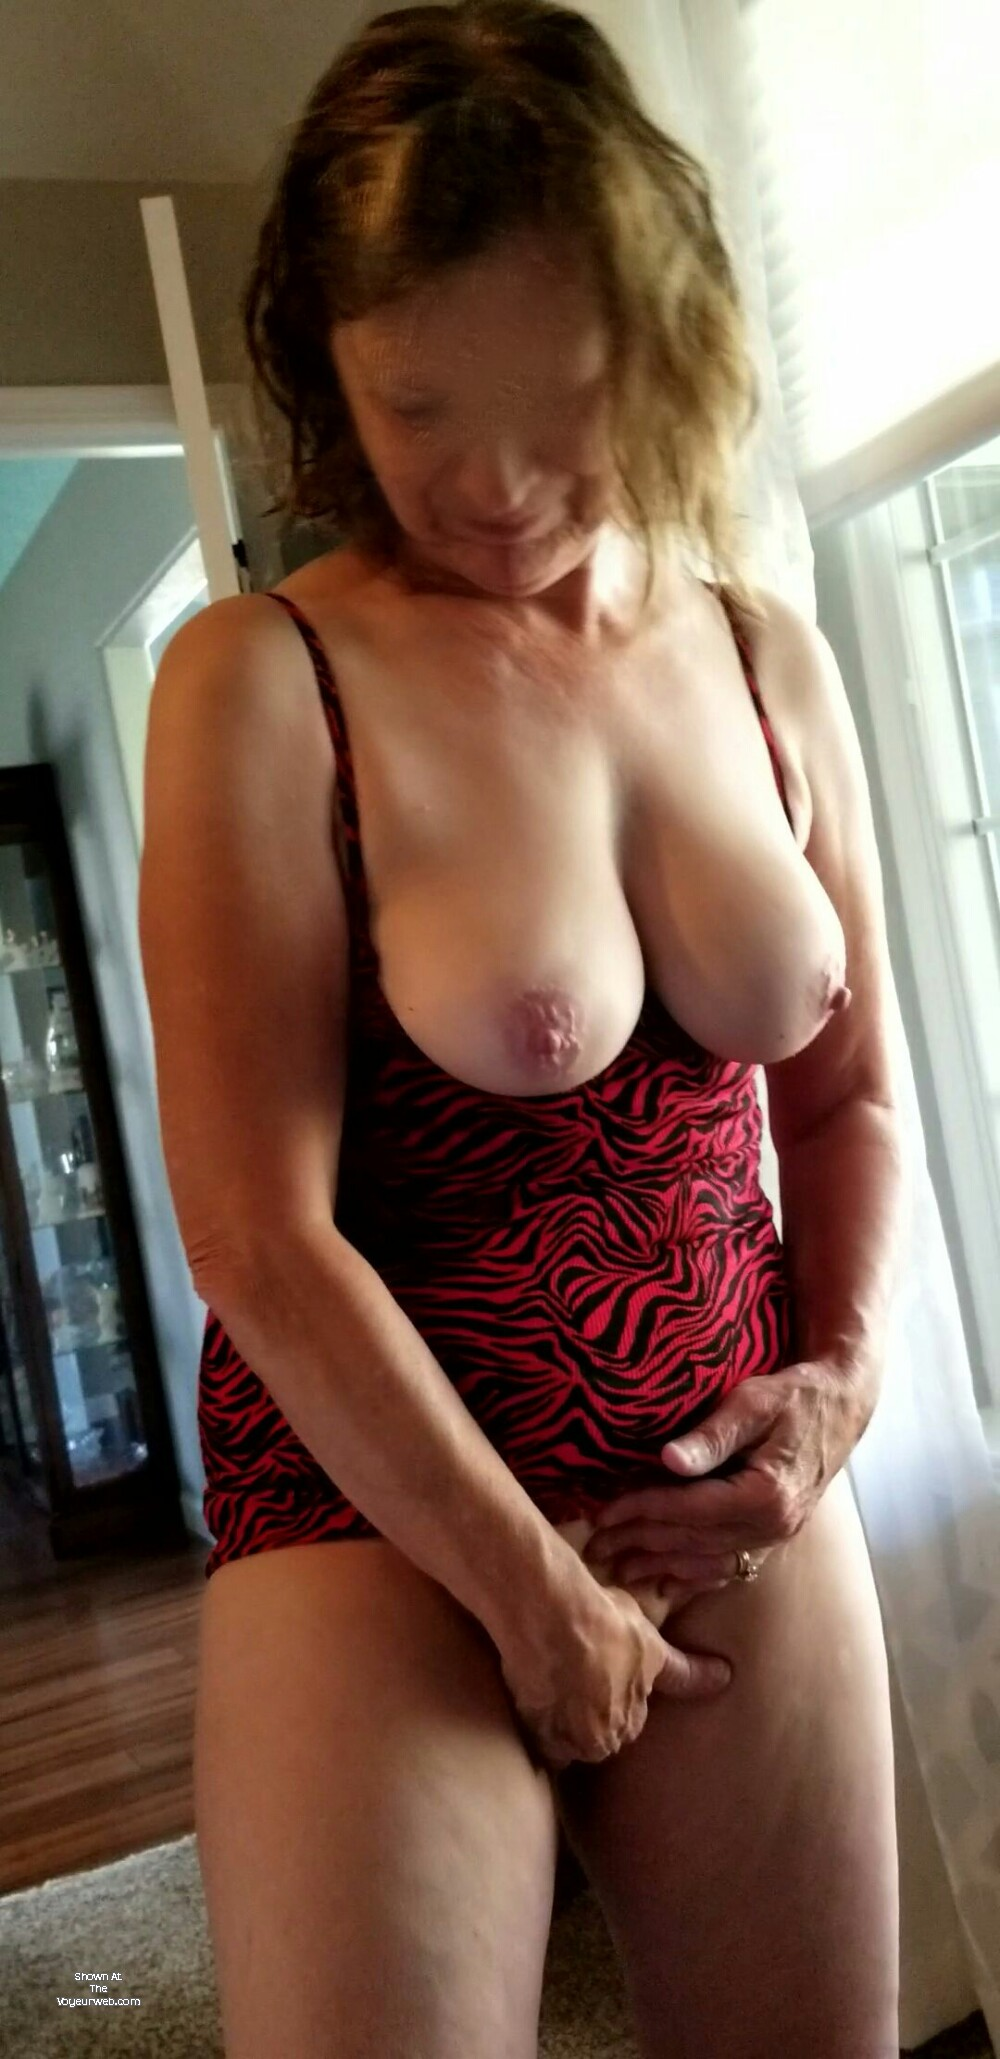 my wife has great boobs